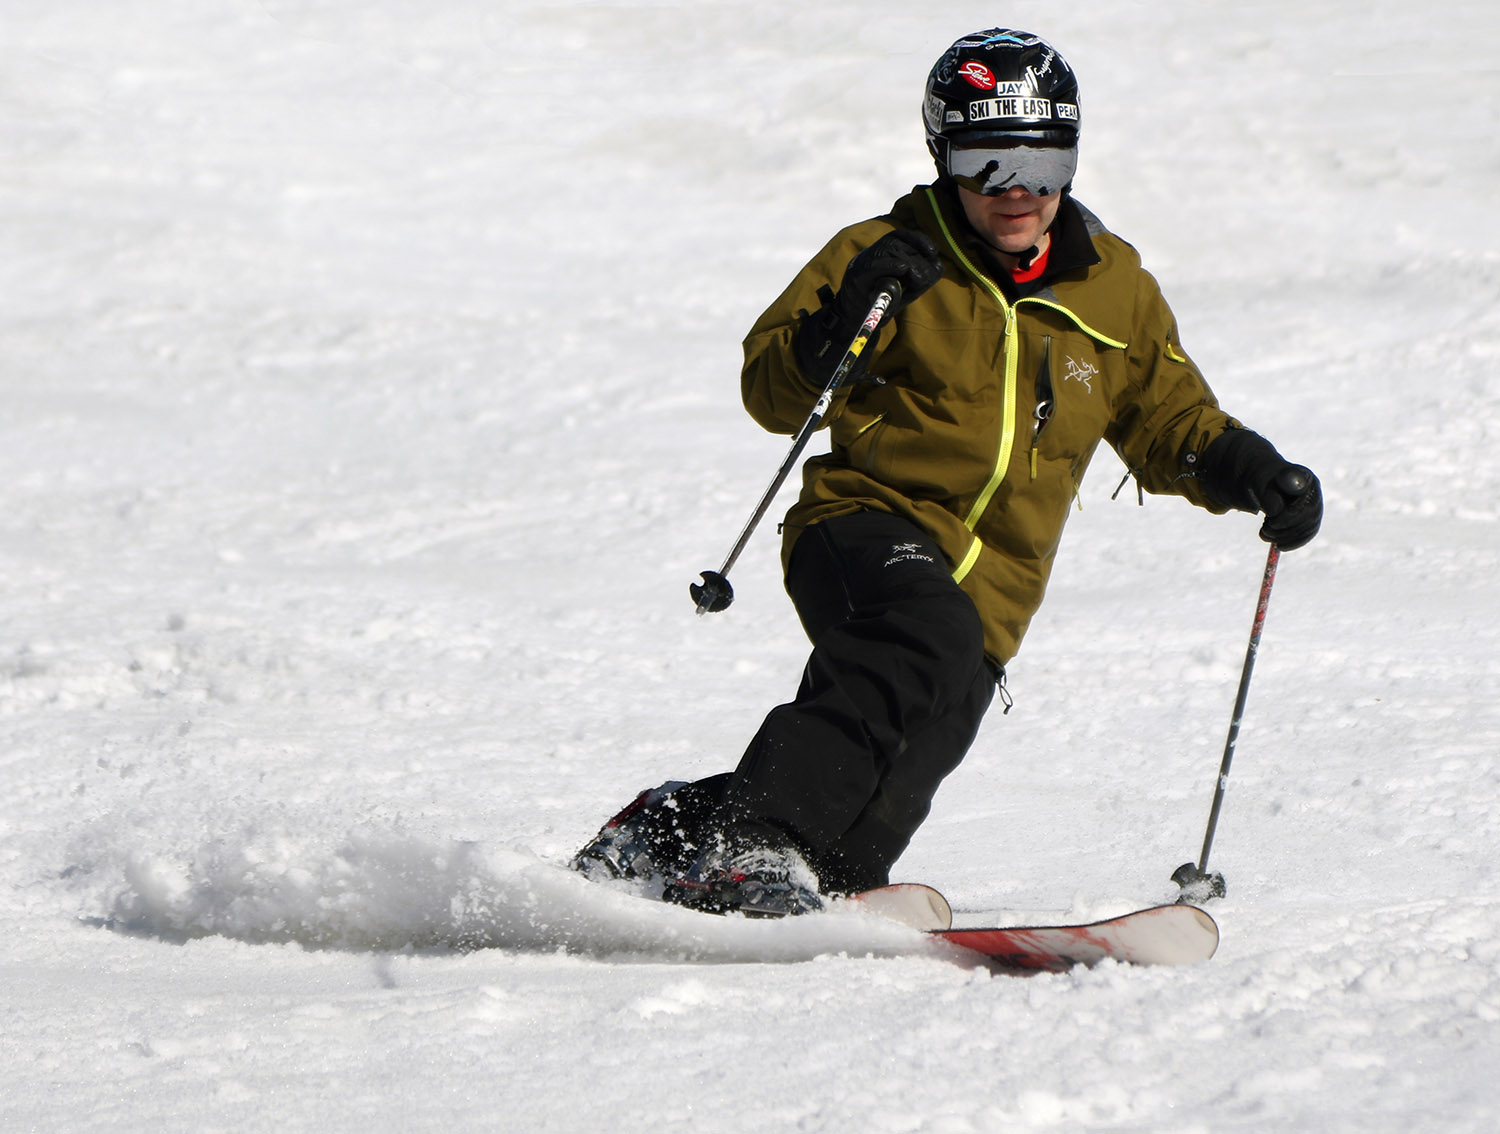 An image of Jay Telemark skiing in spring snow on the Showtime trail at Bolton Valley Ski Resort in Vermont